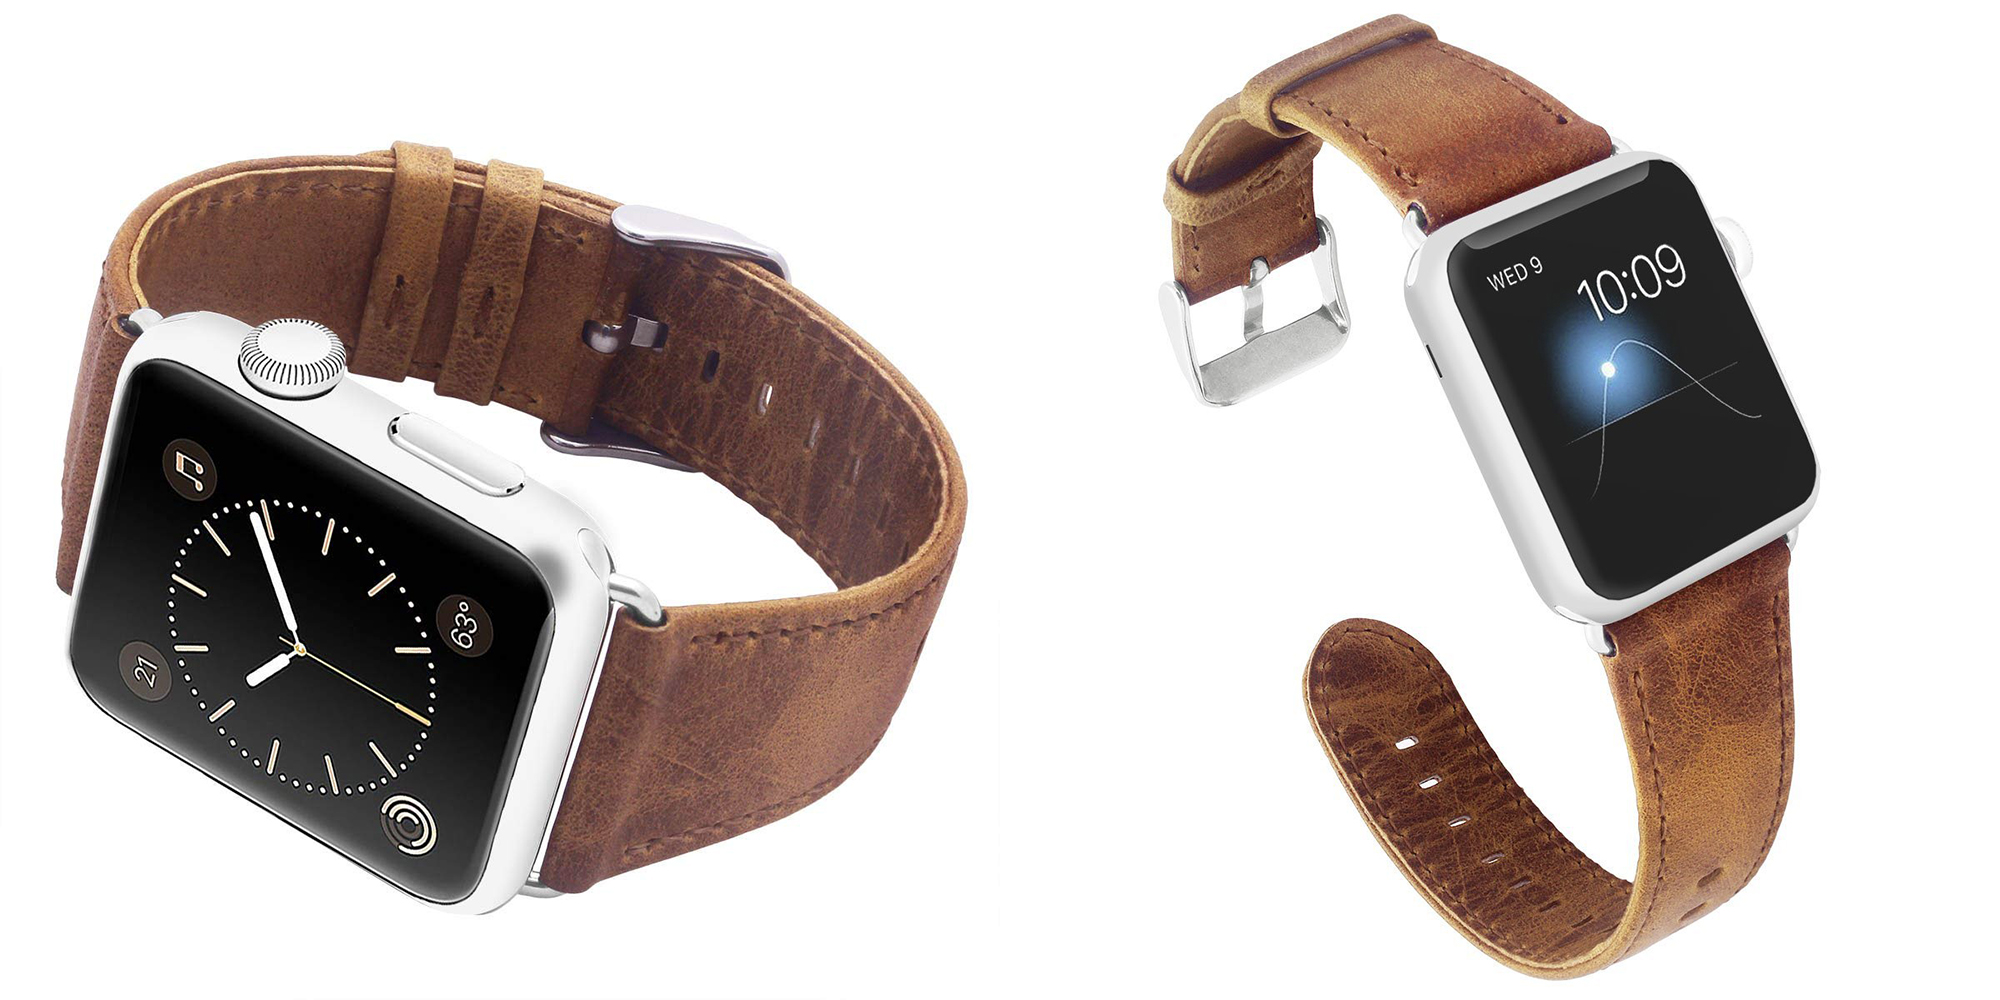 Bring a new style to your Apple Watch w/ this $5 leather band via Amazon